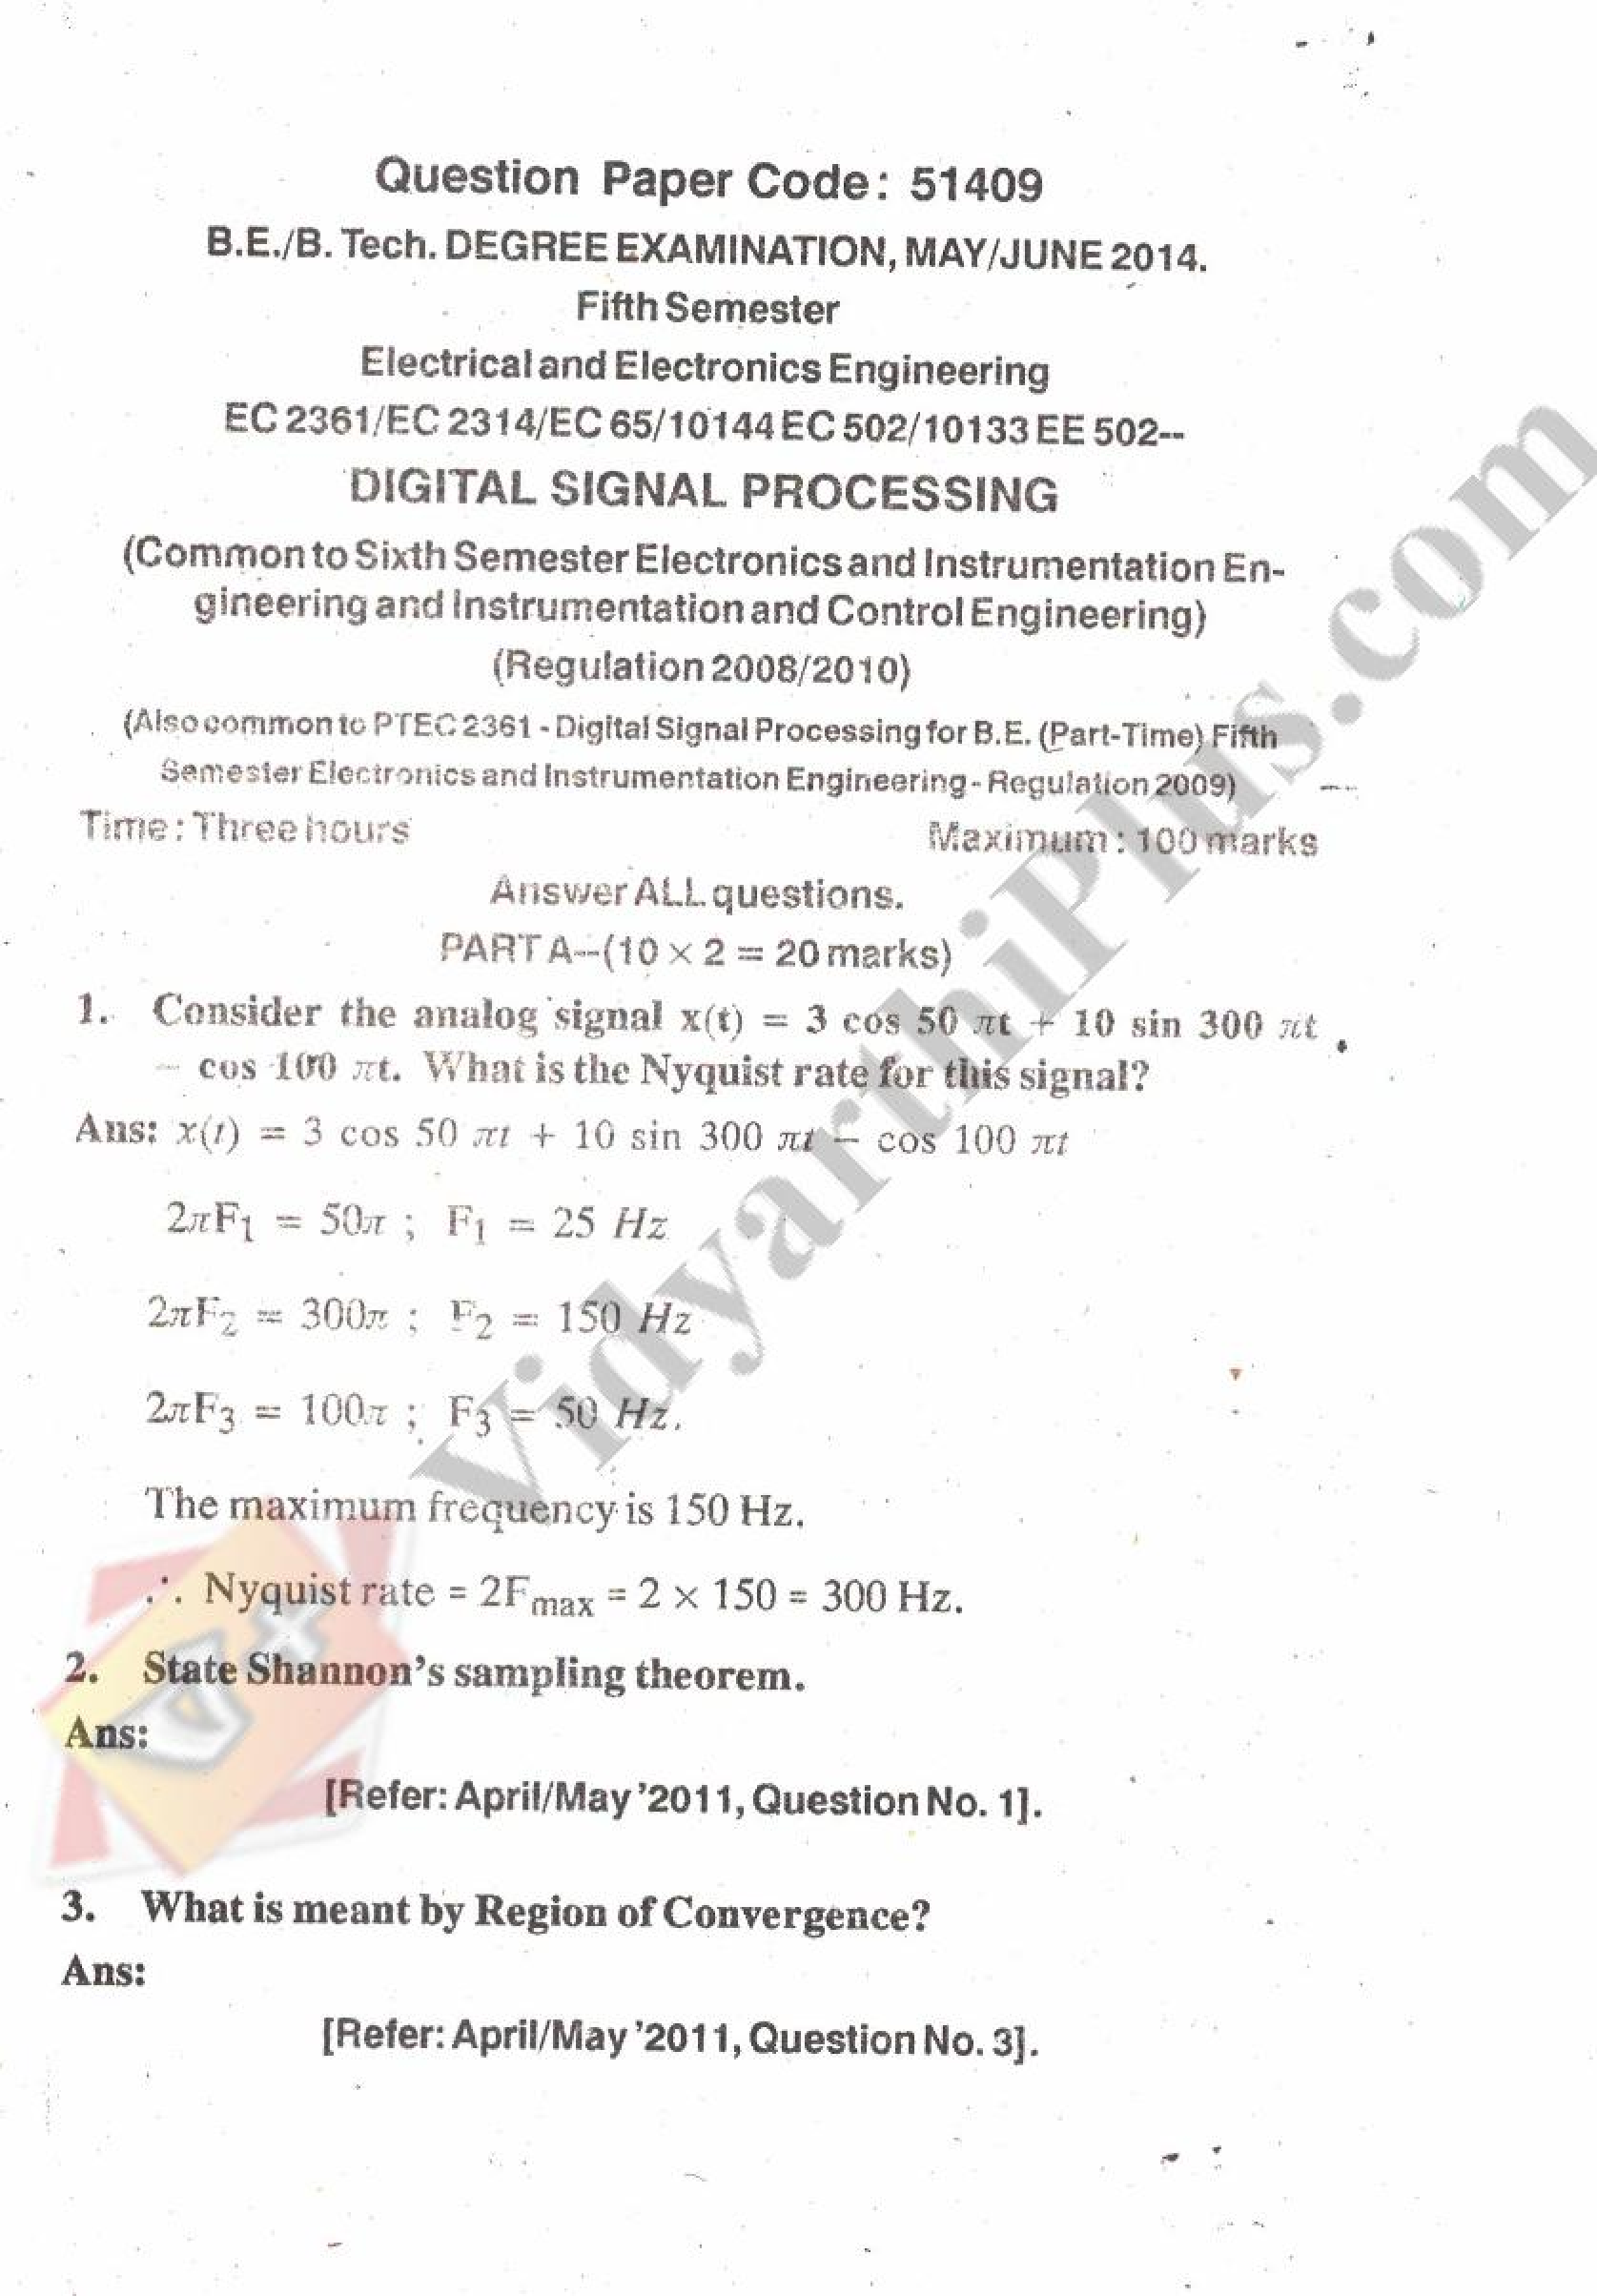 Digital Signal Processing Solved Question Paper - 2015 Edition